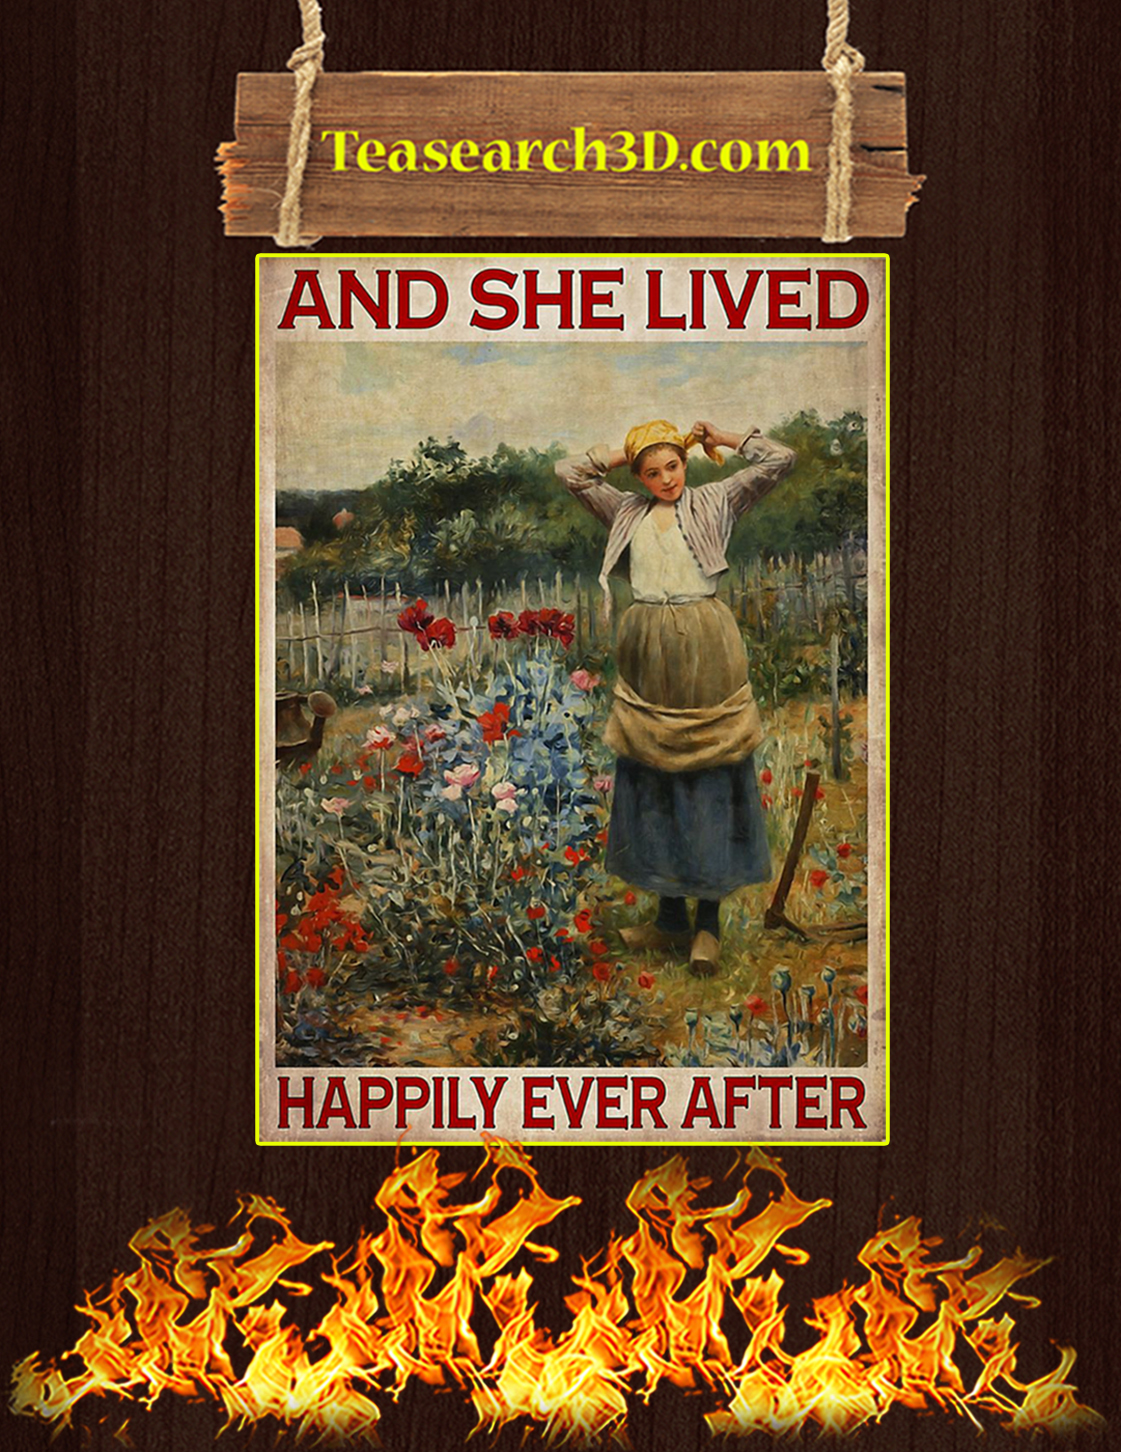 And she lived happily ever after gardening poster A3